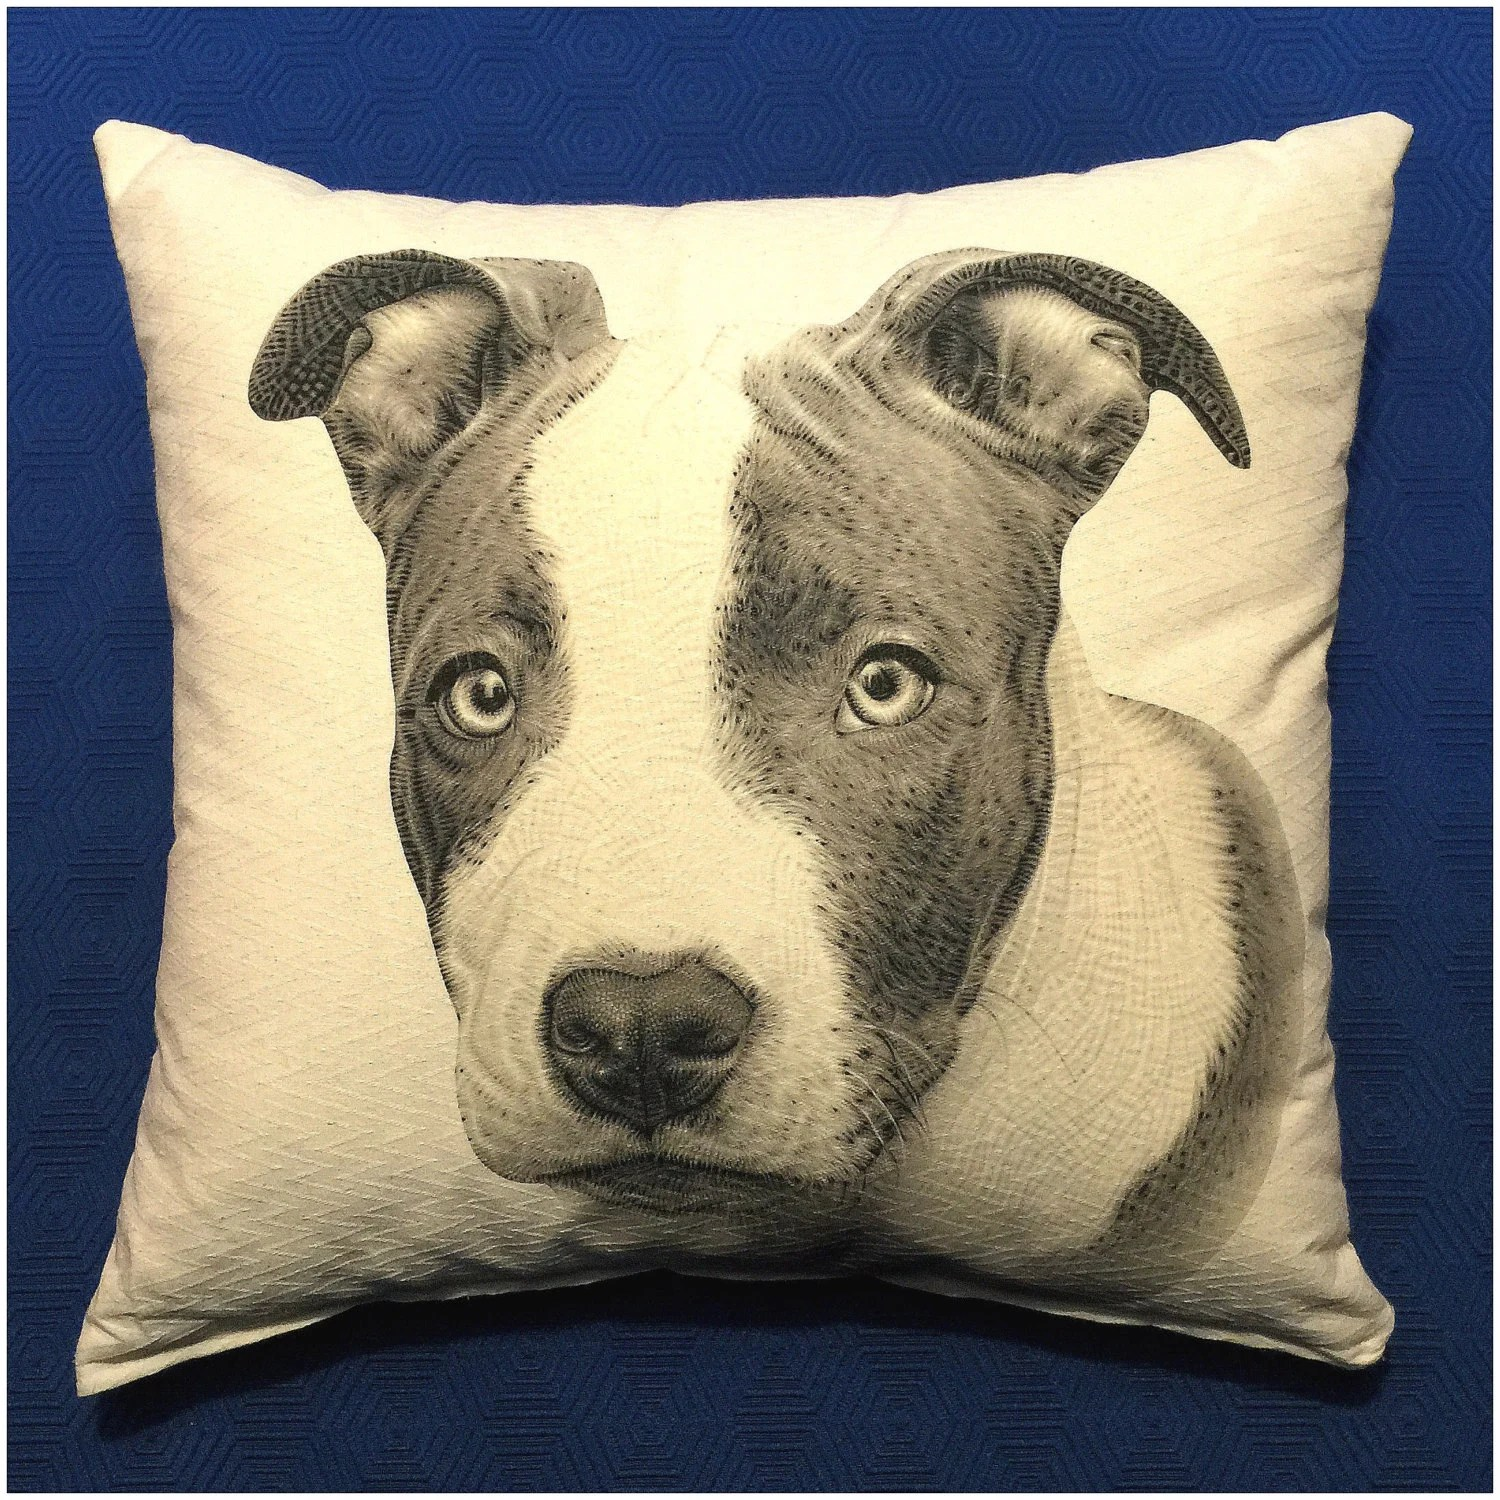 Pitbull pillow cover dog pillow animal pillow pit bull